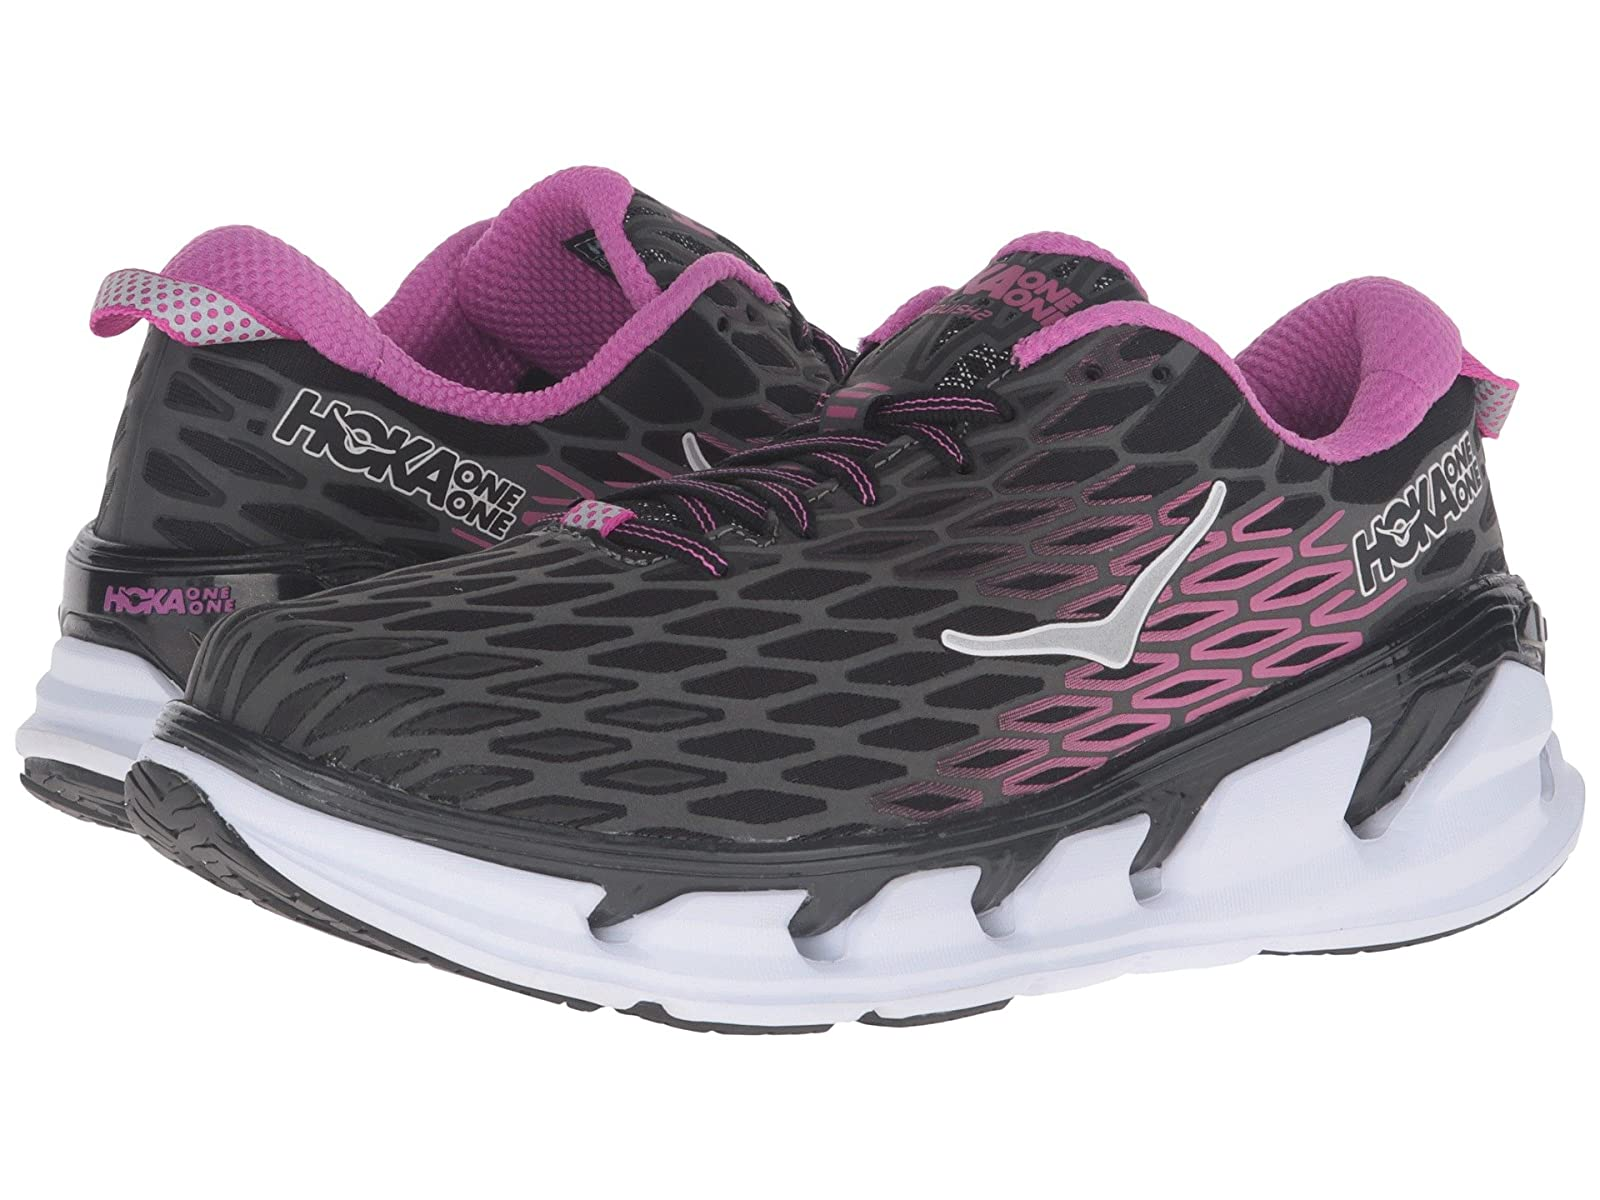 Hoka One One Vanquish 2Cheap and distinctive eye-catching shoes